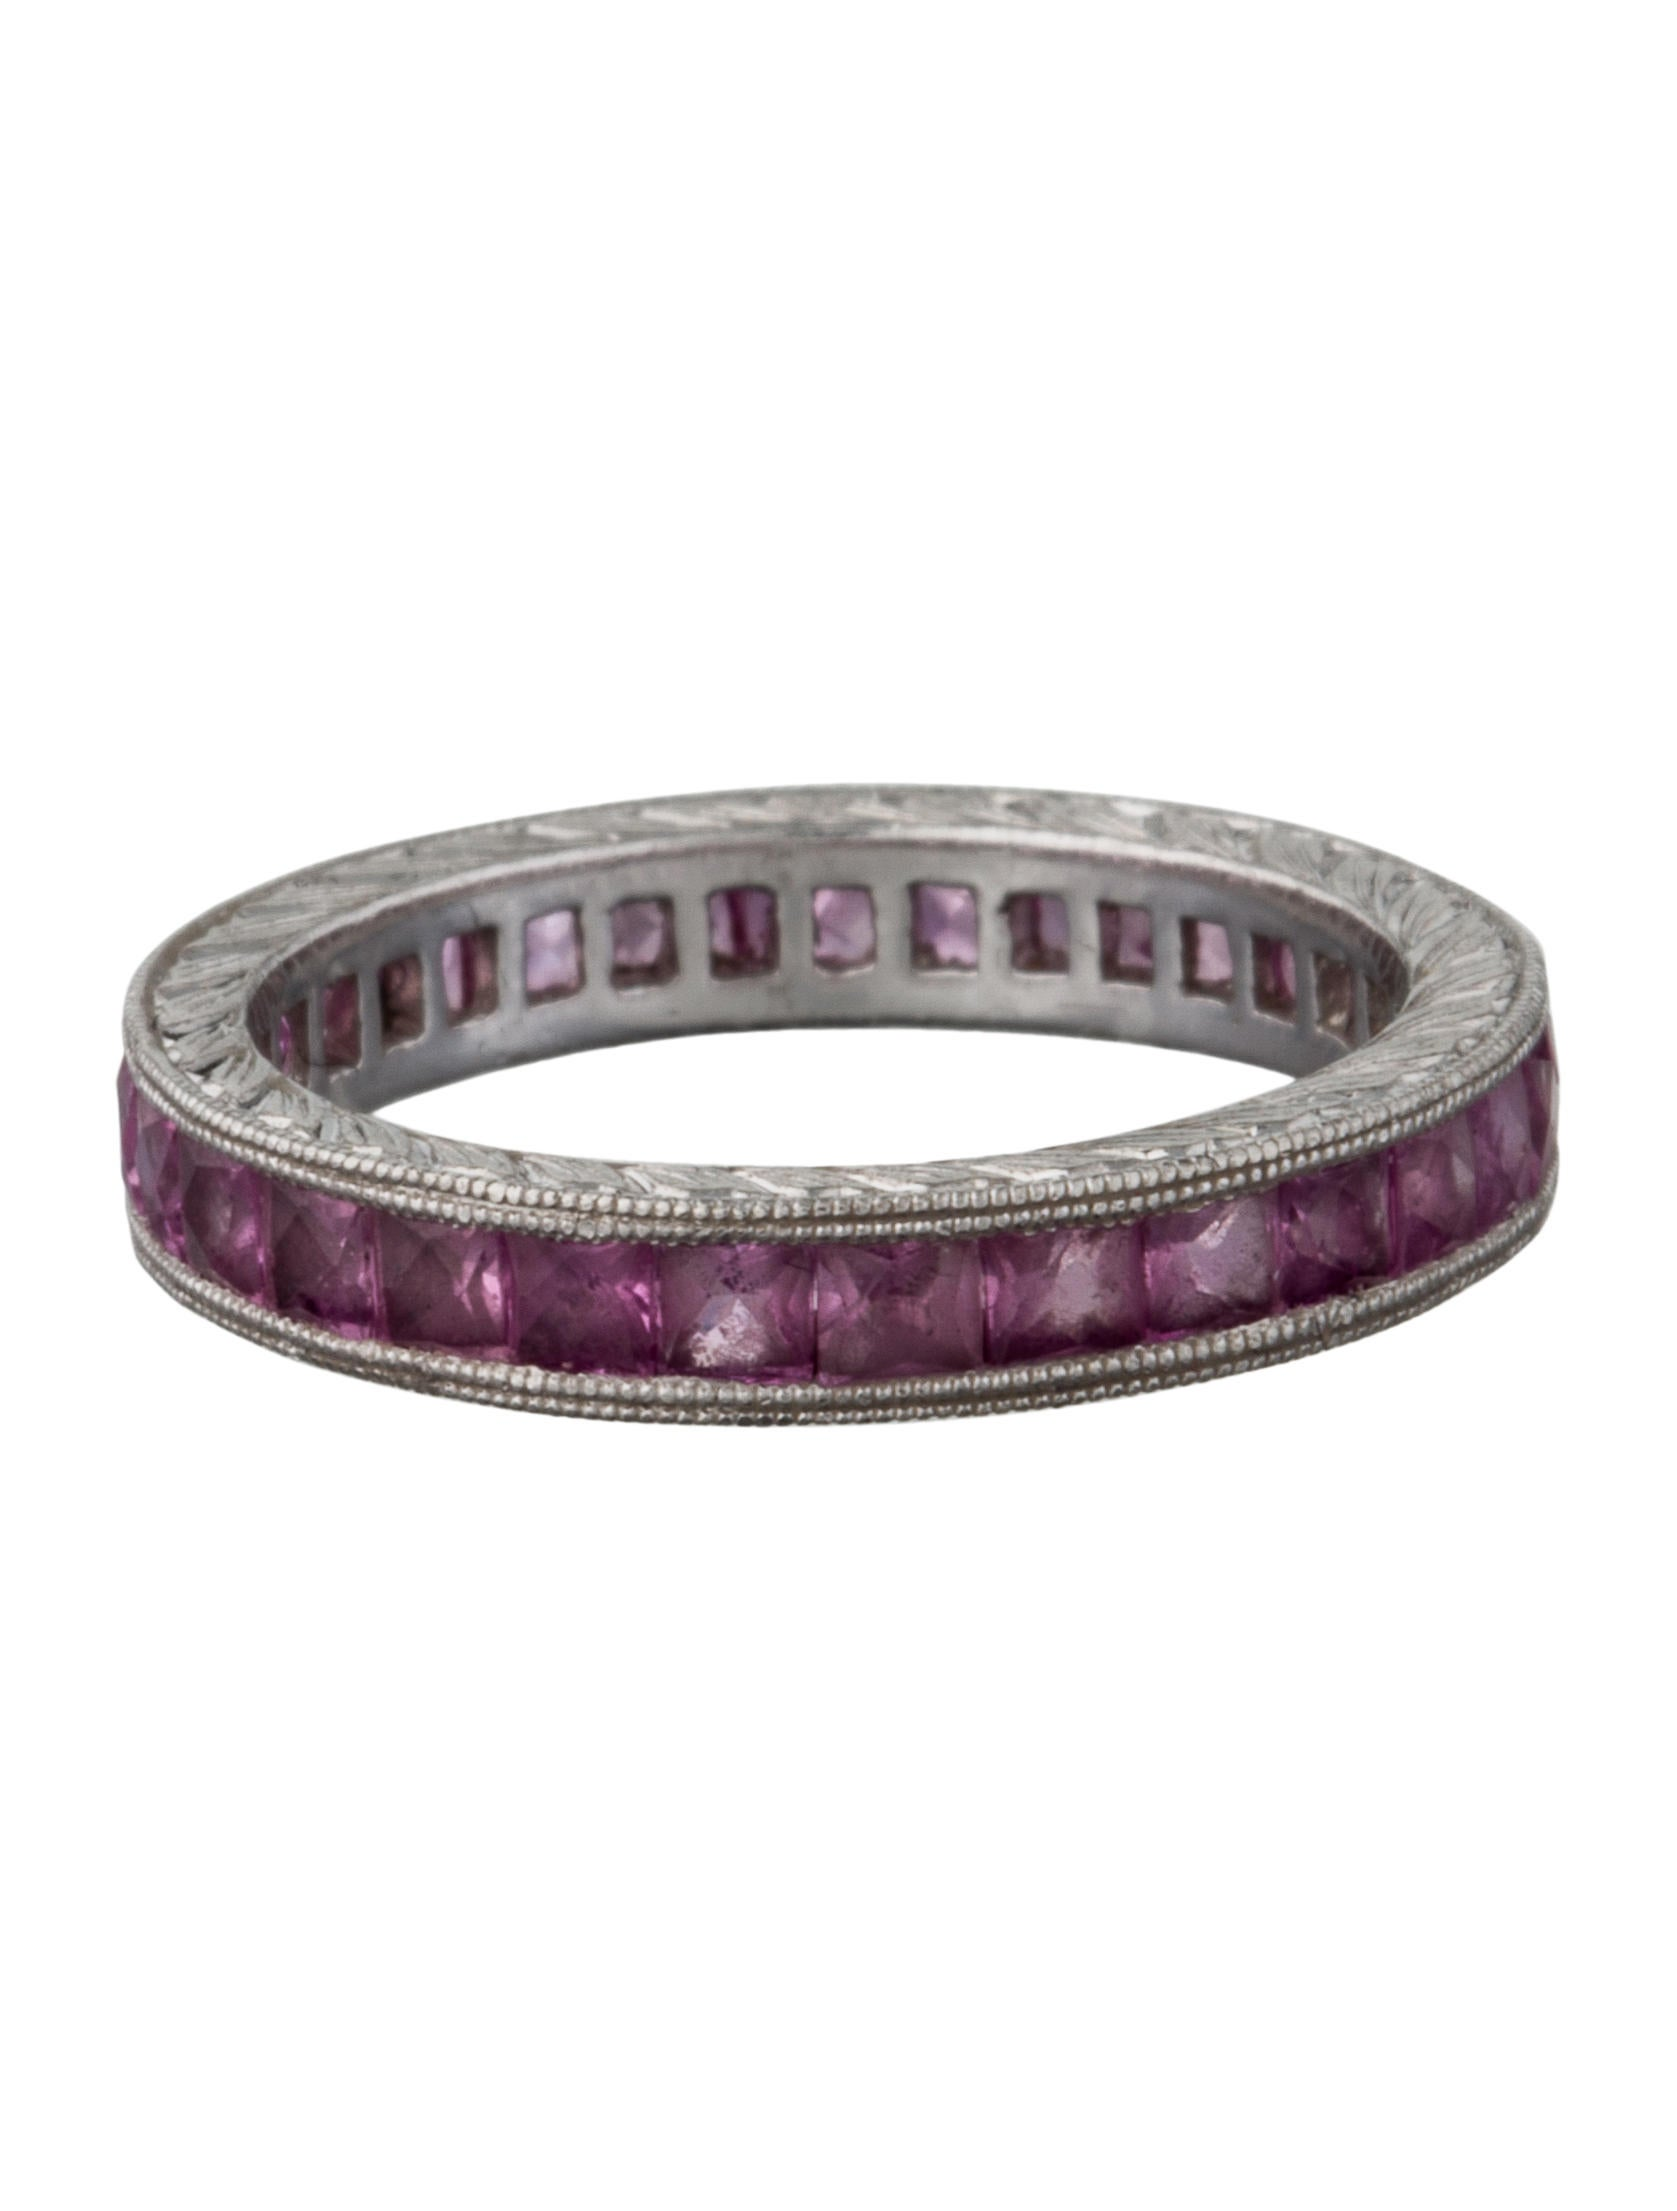 Pink Sapphire Eternity Band - Rings - FJR27518 | The RealReal